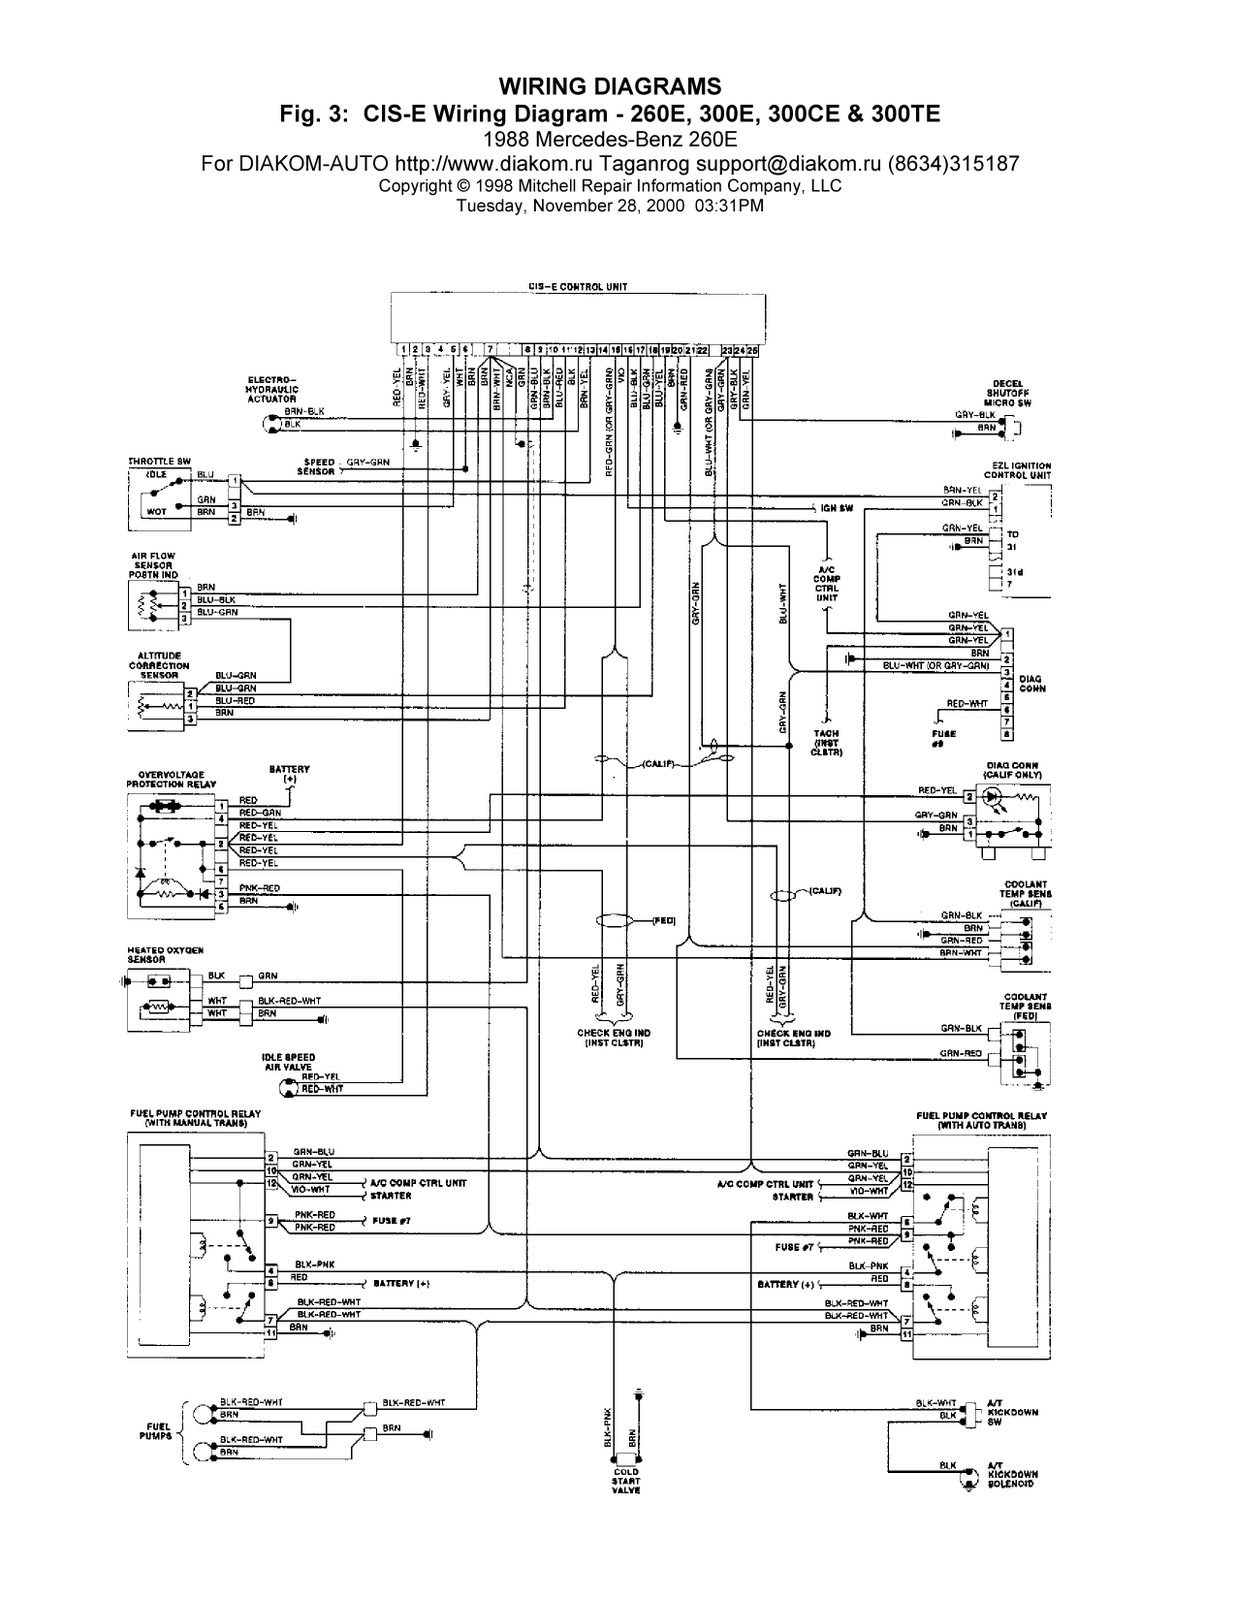 medium resolution of 2006 mercedes ml350 engine diagram wiring diagram toolbox 2013 ml350 fuse box diagram ml350 fuse diagram